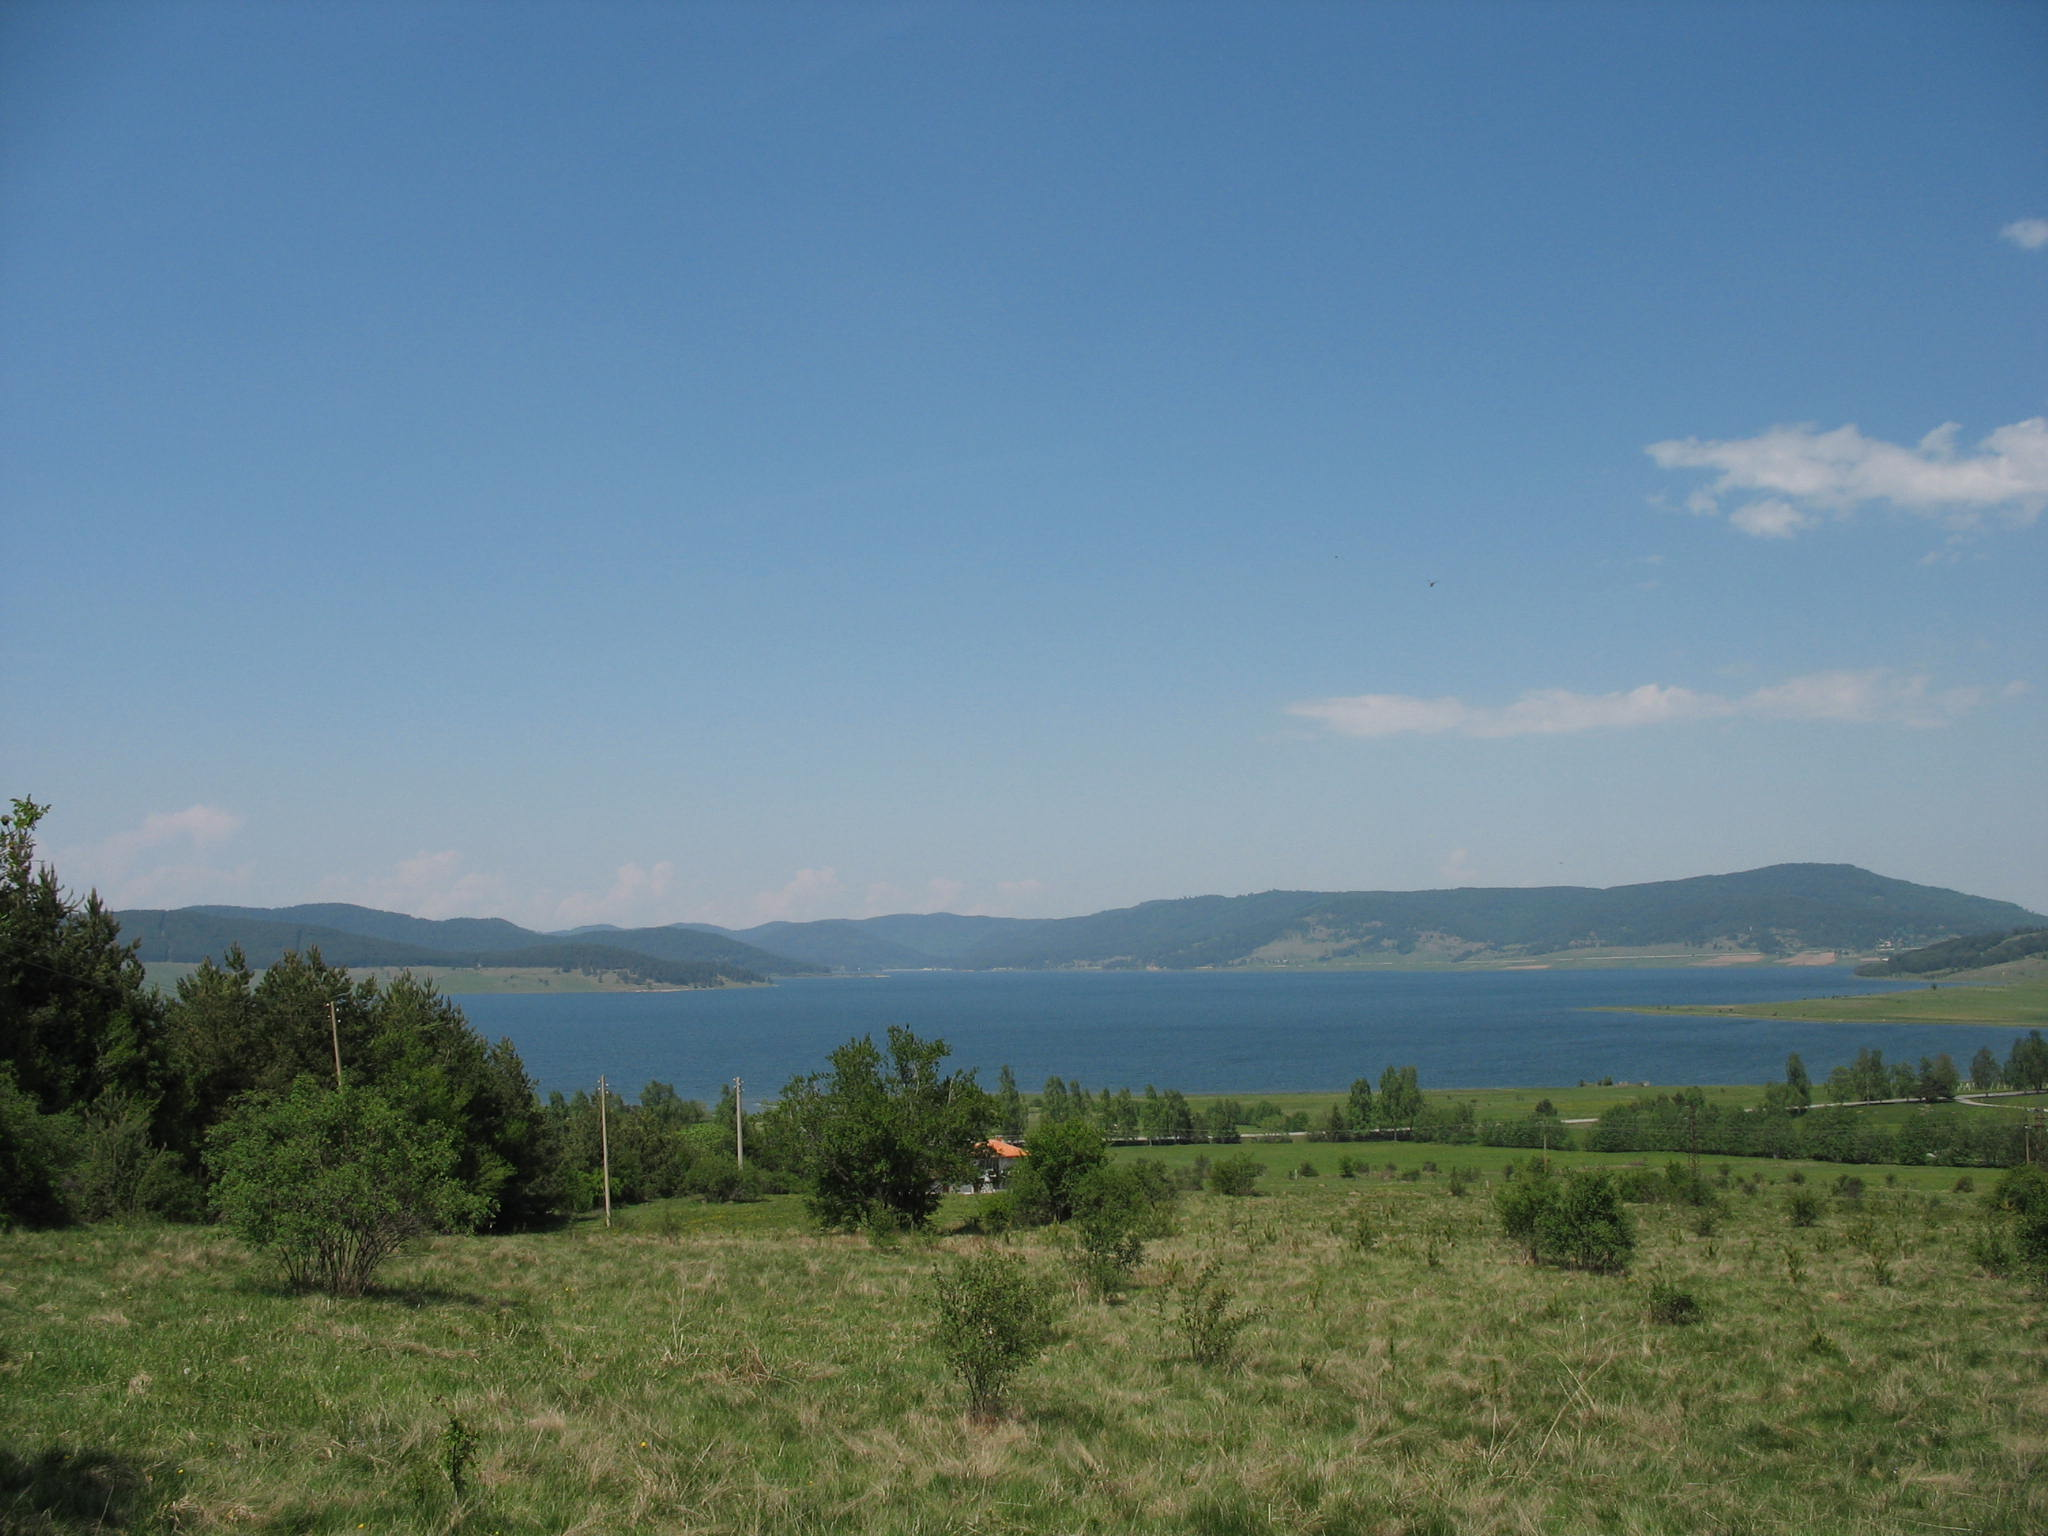 Tsigov Chark Batak Dam Bulgaria Land, plot for sale from the owner